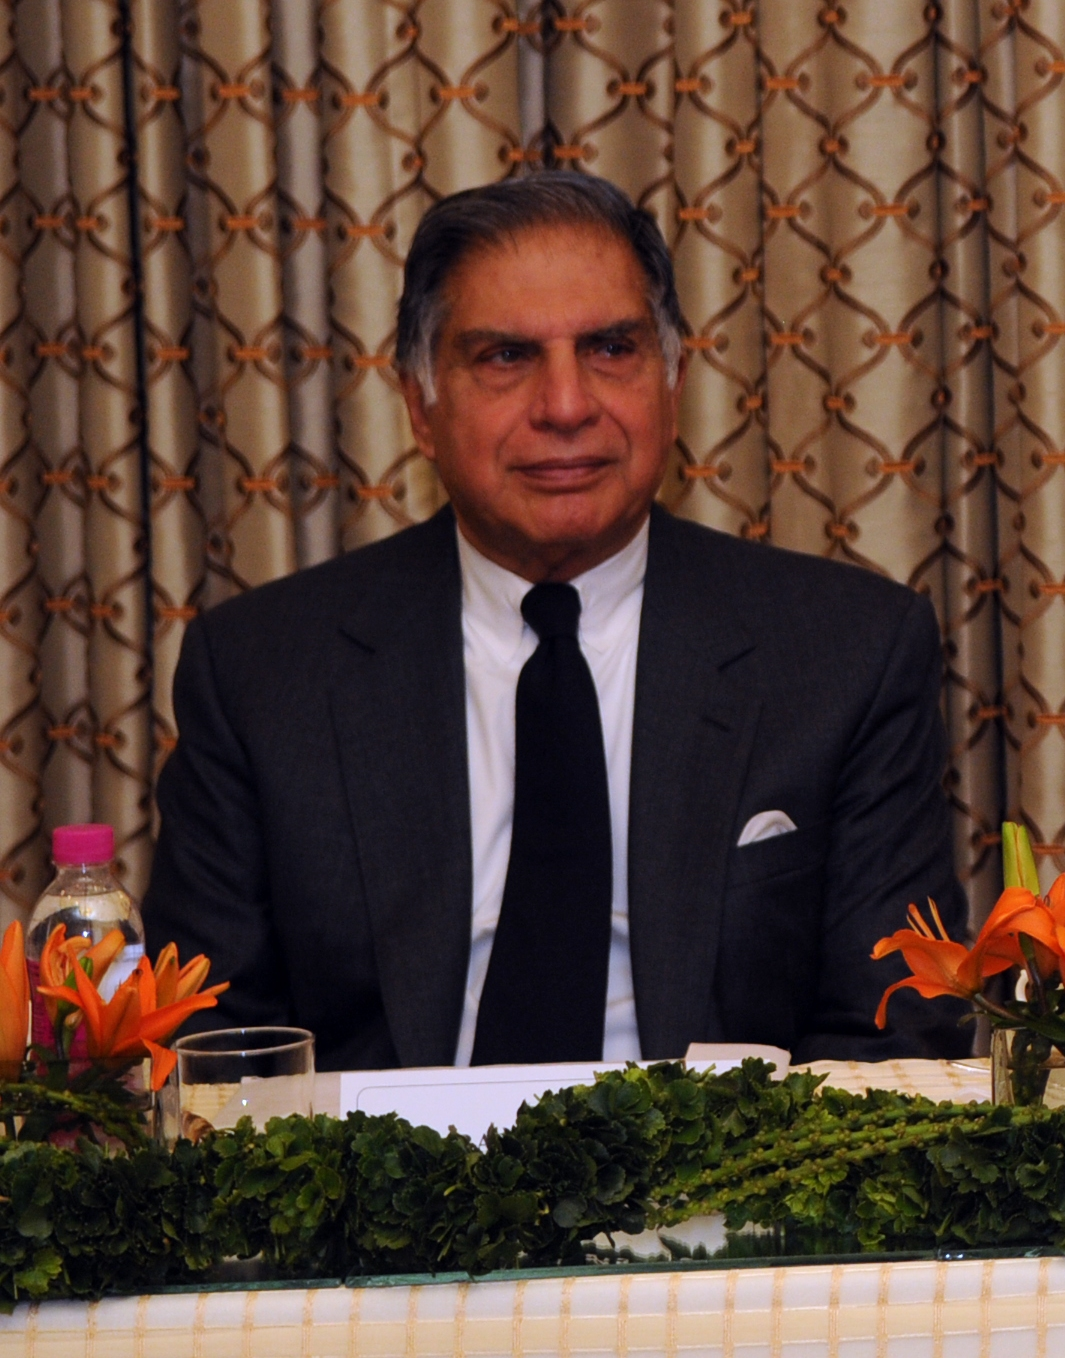 = Ratan Tata, Charmain of the Tata Group